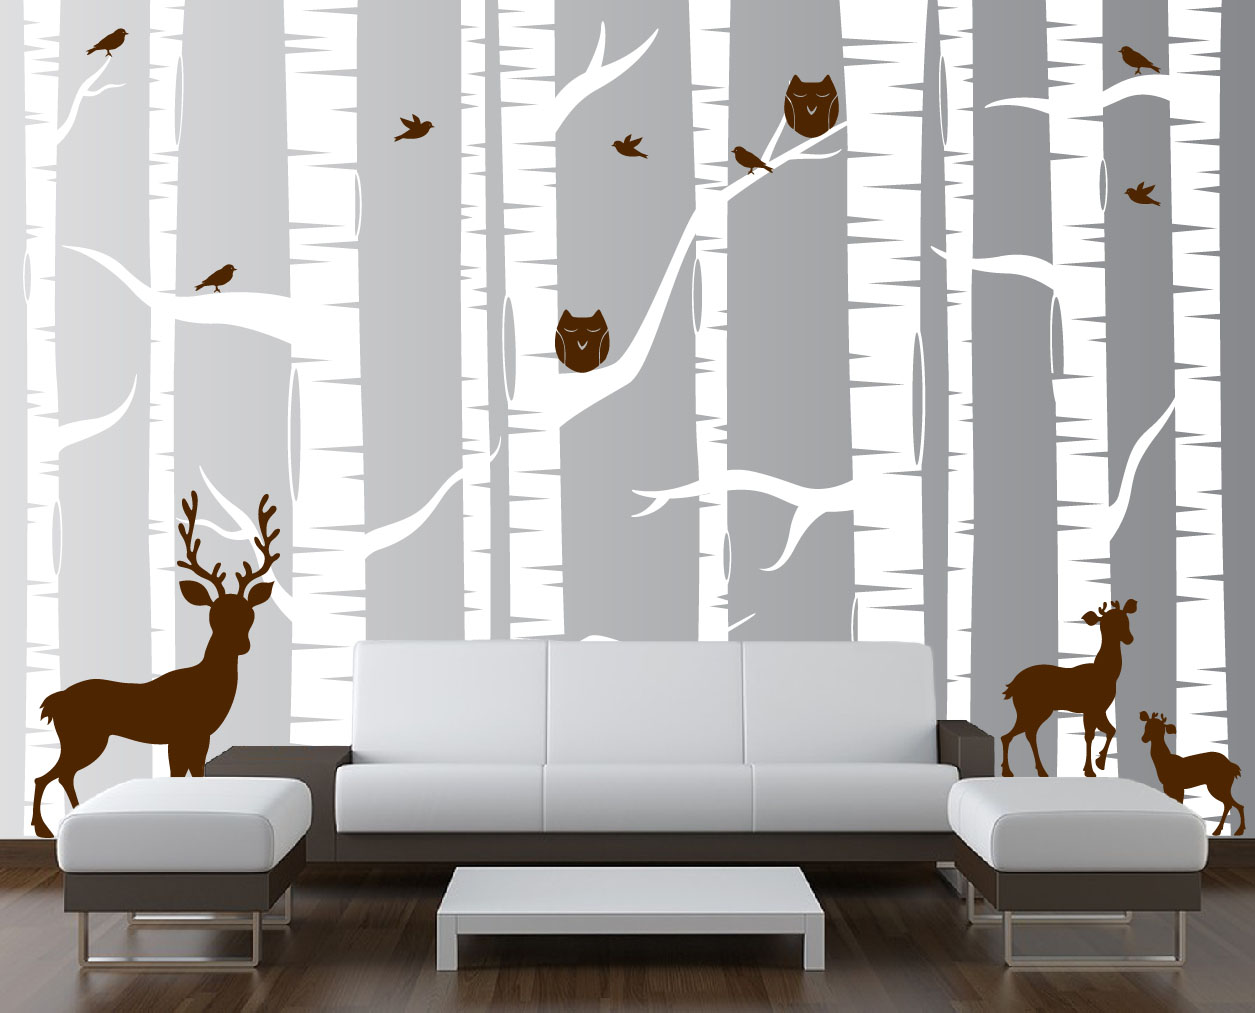 Birch Tree Forest Set Vinyl Wall Decal Owls Deer - Vinyl wall decals birch tree